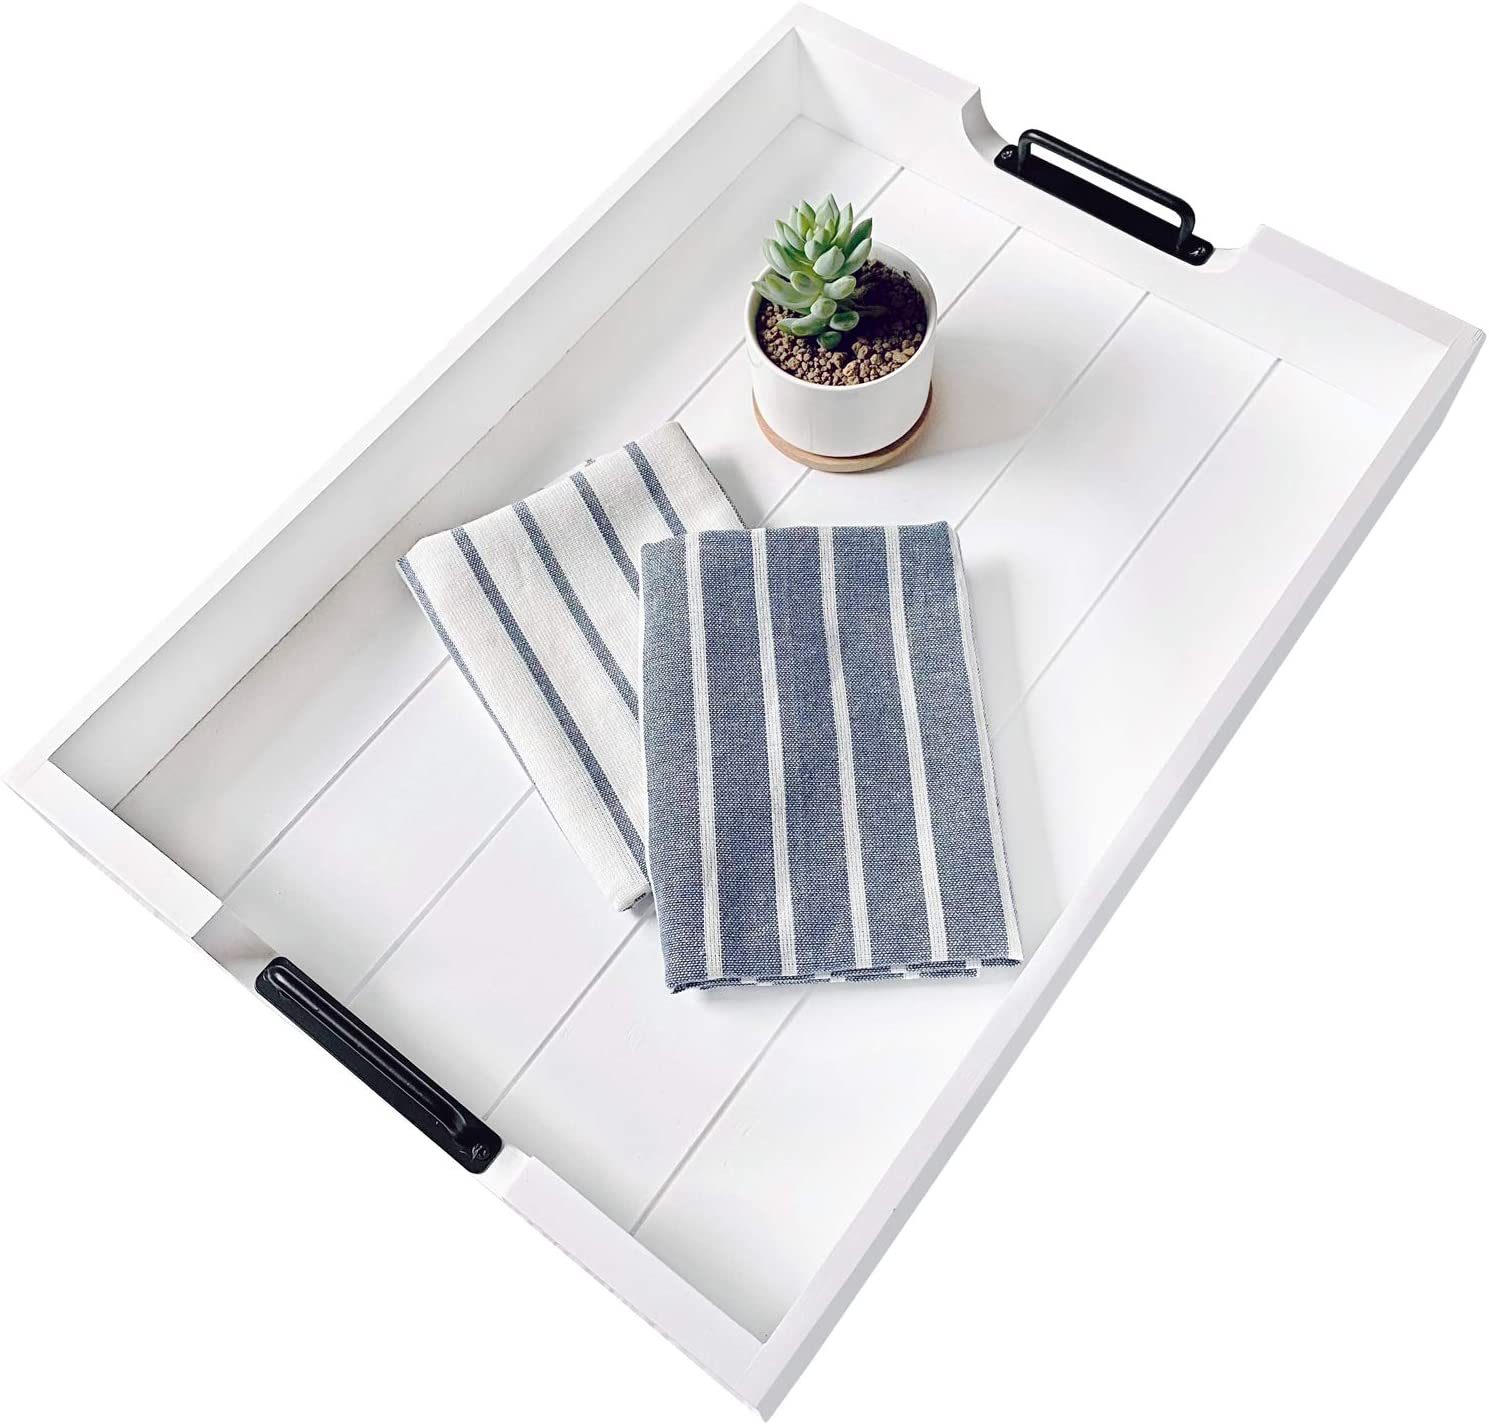 Large 20 x 14 Wood Serving Tray with Handles. Coffee Table Tray. Decorative Tray with Waterproof Paint for Ottoman, Breakfast, Dinner, Centerpieces for Tables, Farmhouse Decor, Wooden White Tray